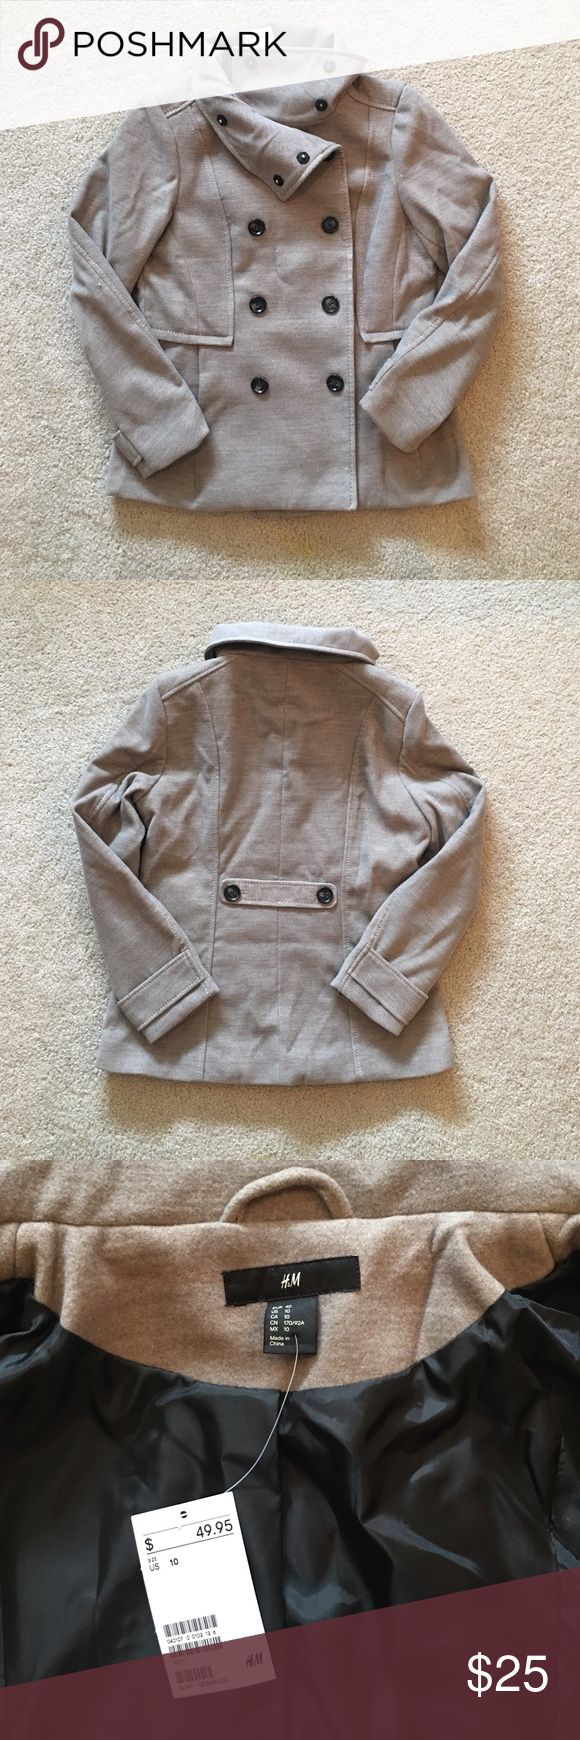 H&M Double Breasted Jacket New with Tags! Bought last year and never wore and now it's a little too big. 2 front pockets. The neck is cute buttoned up or laying flat. Great color too! H&M Jackets & Coats Pea Coats